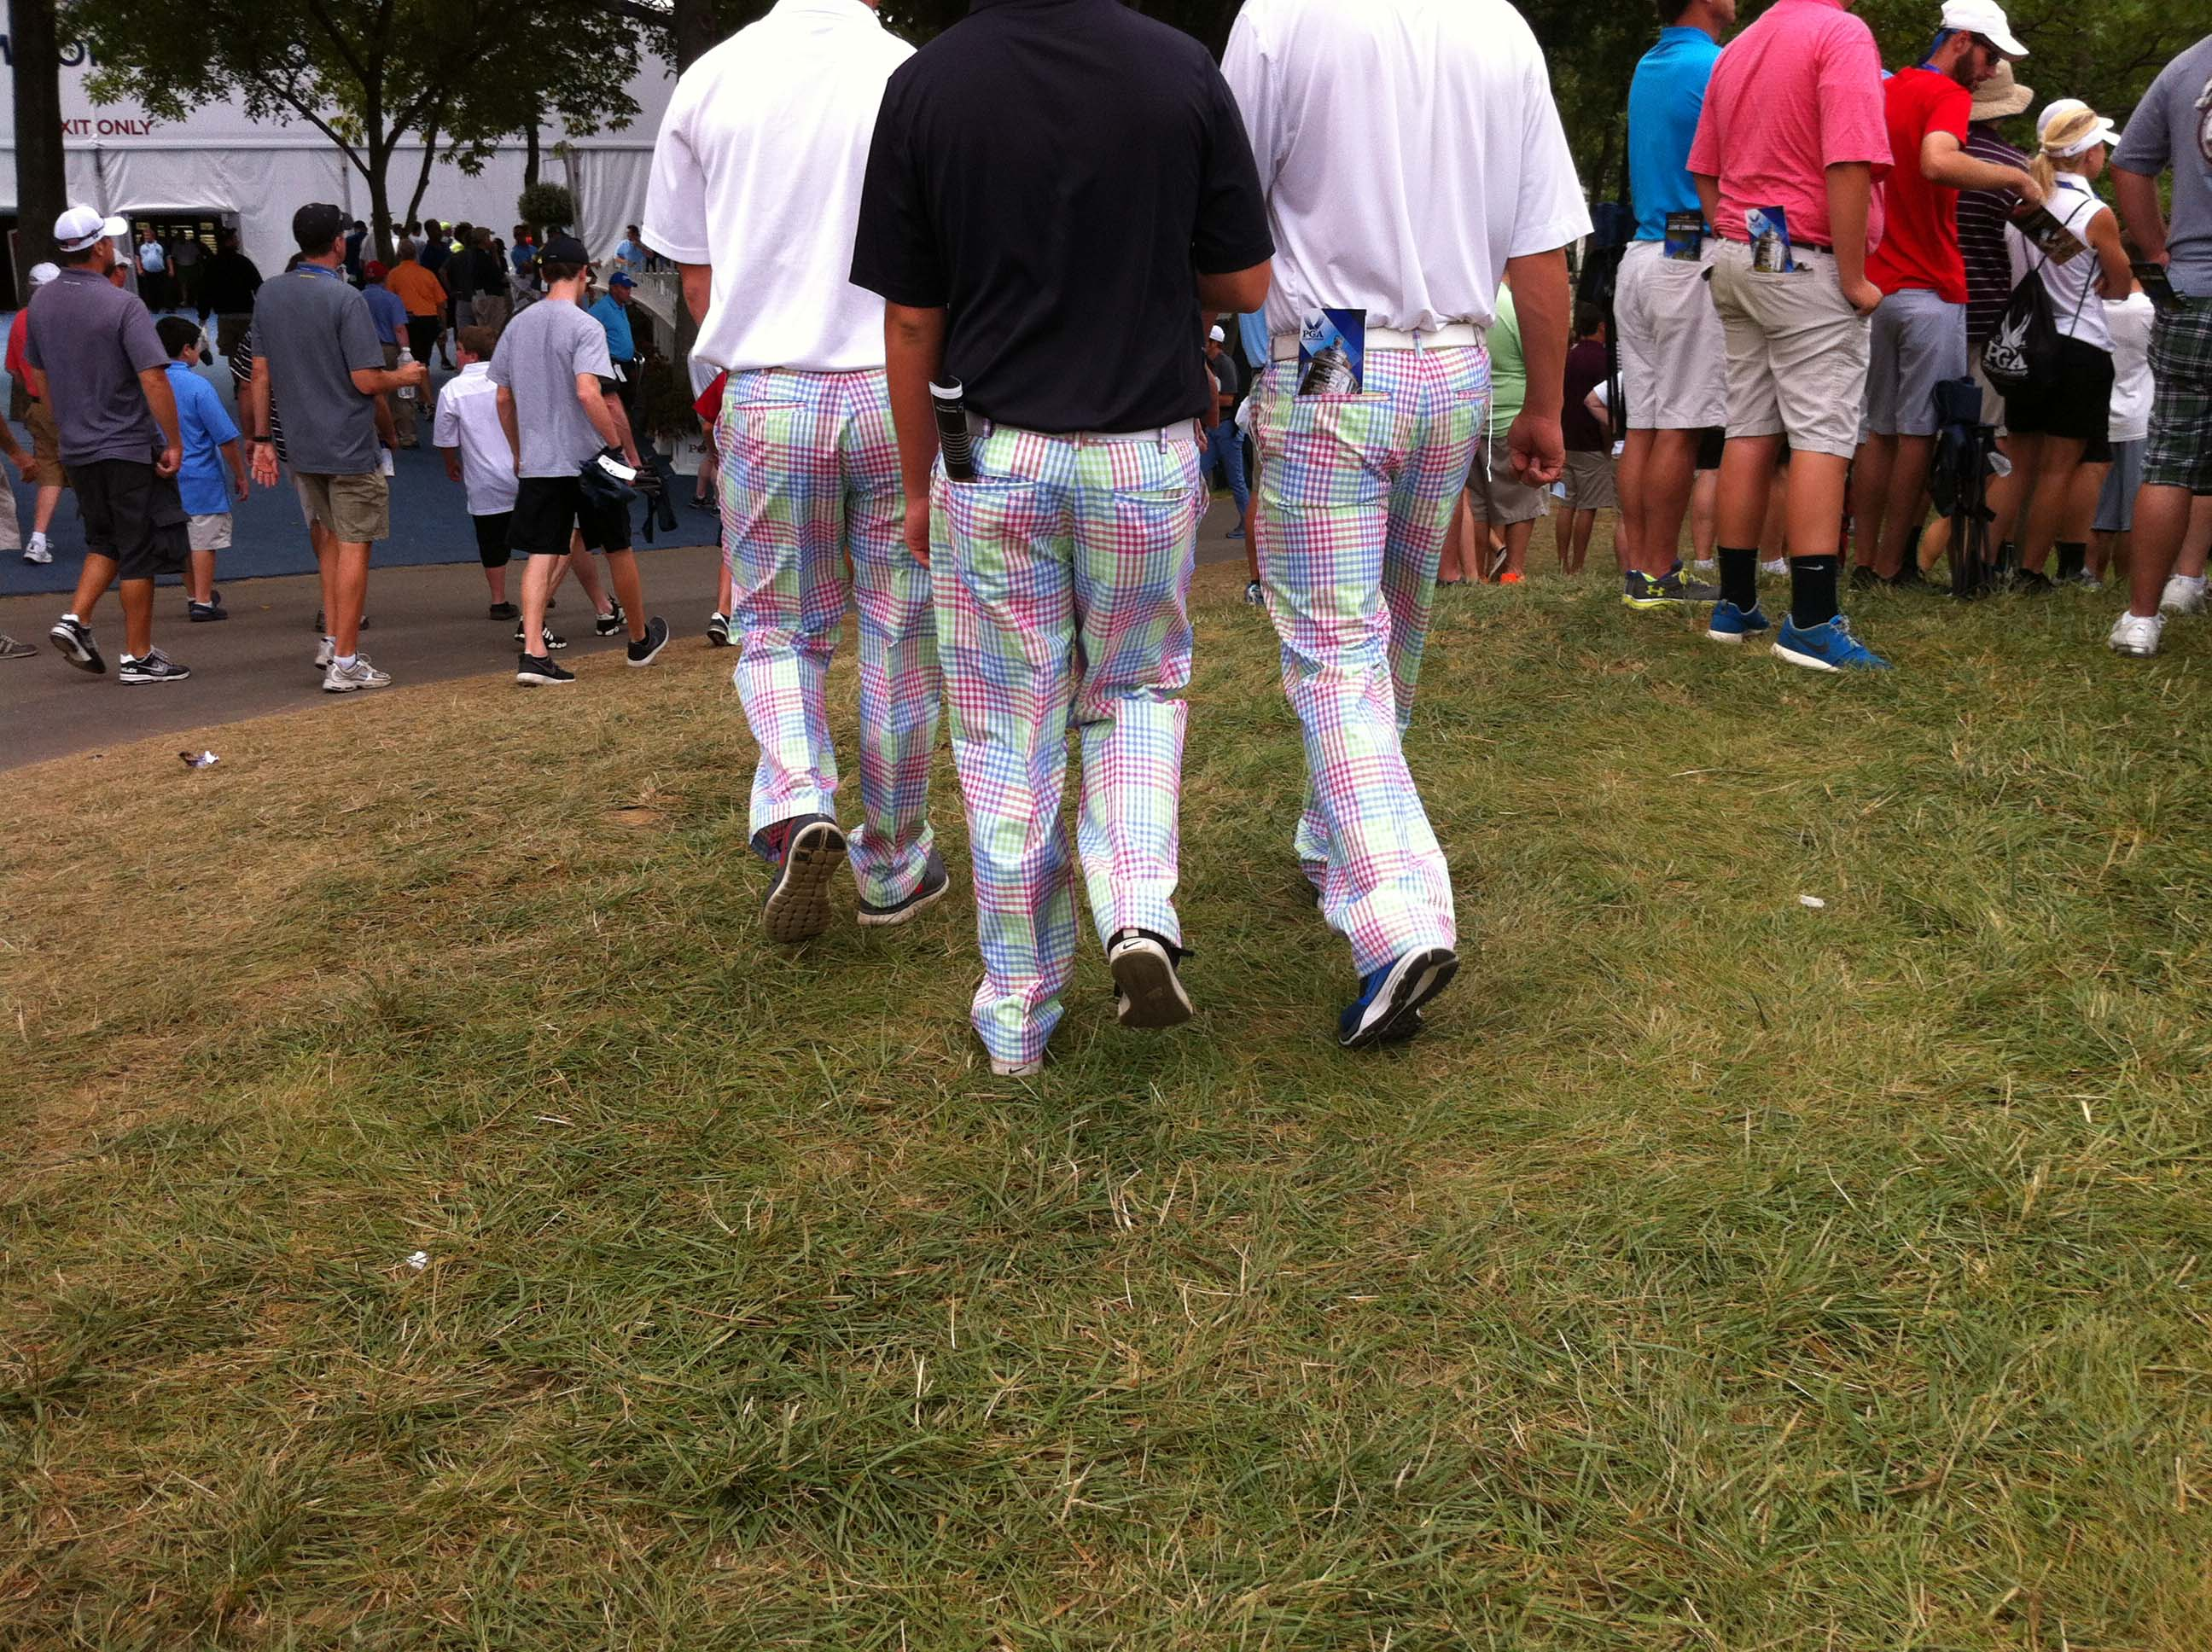 They accepted the invitation to Brick Tamland's pants party